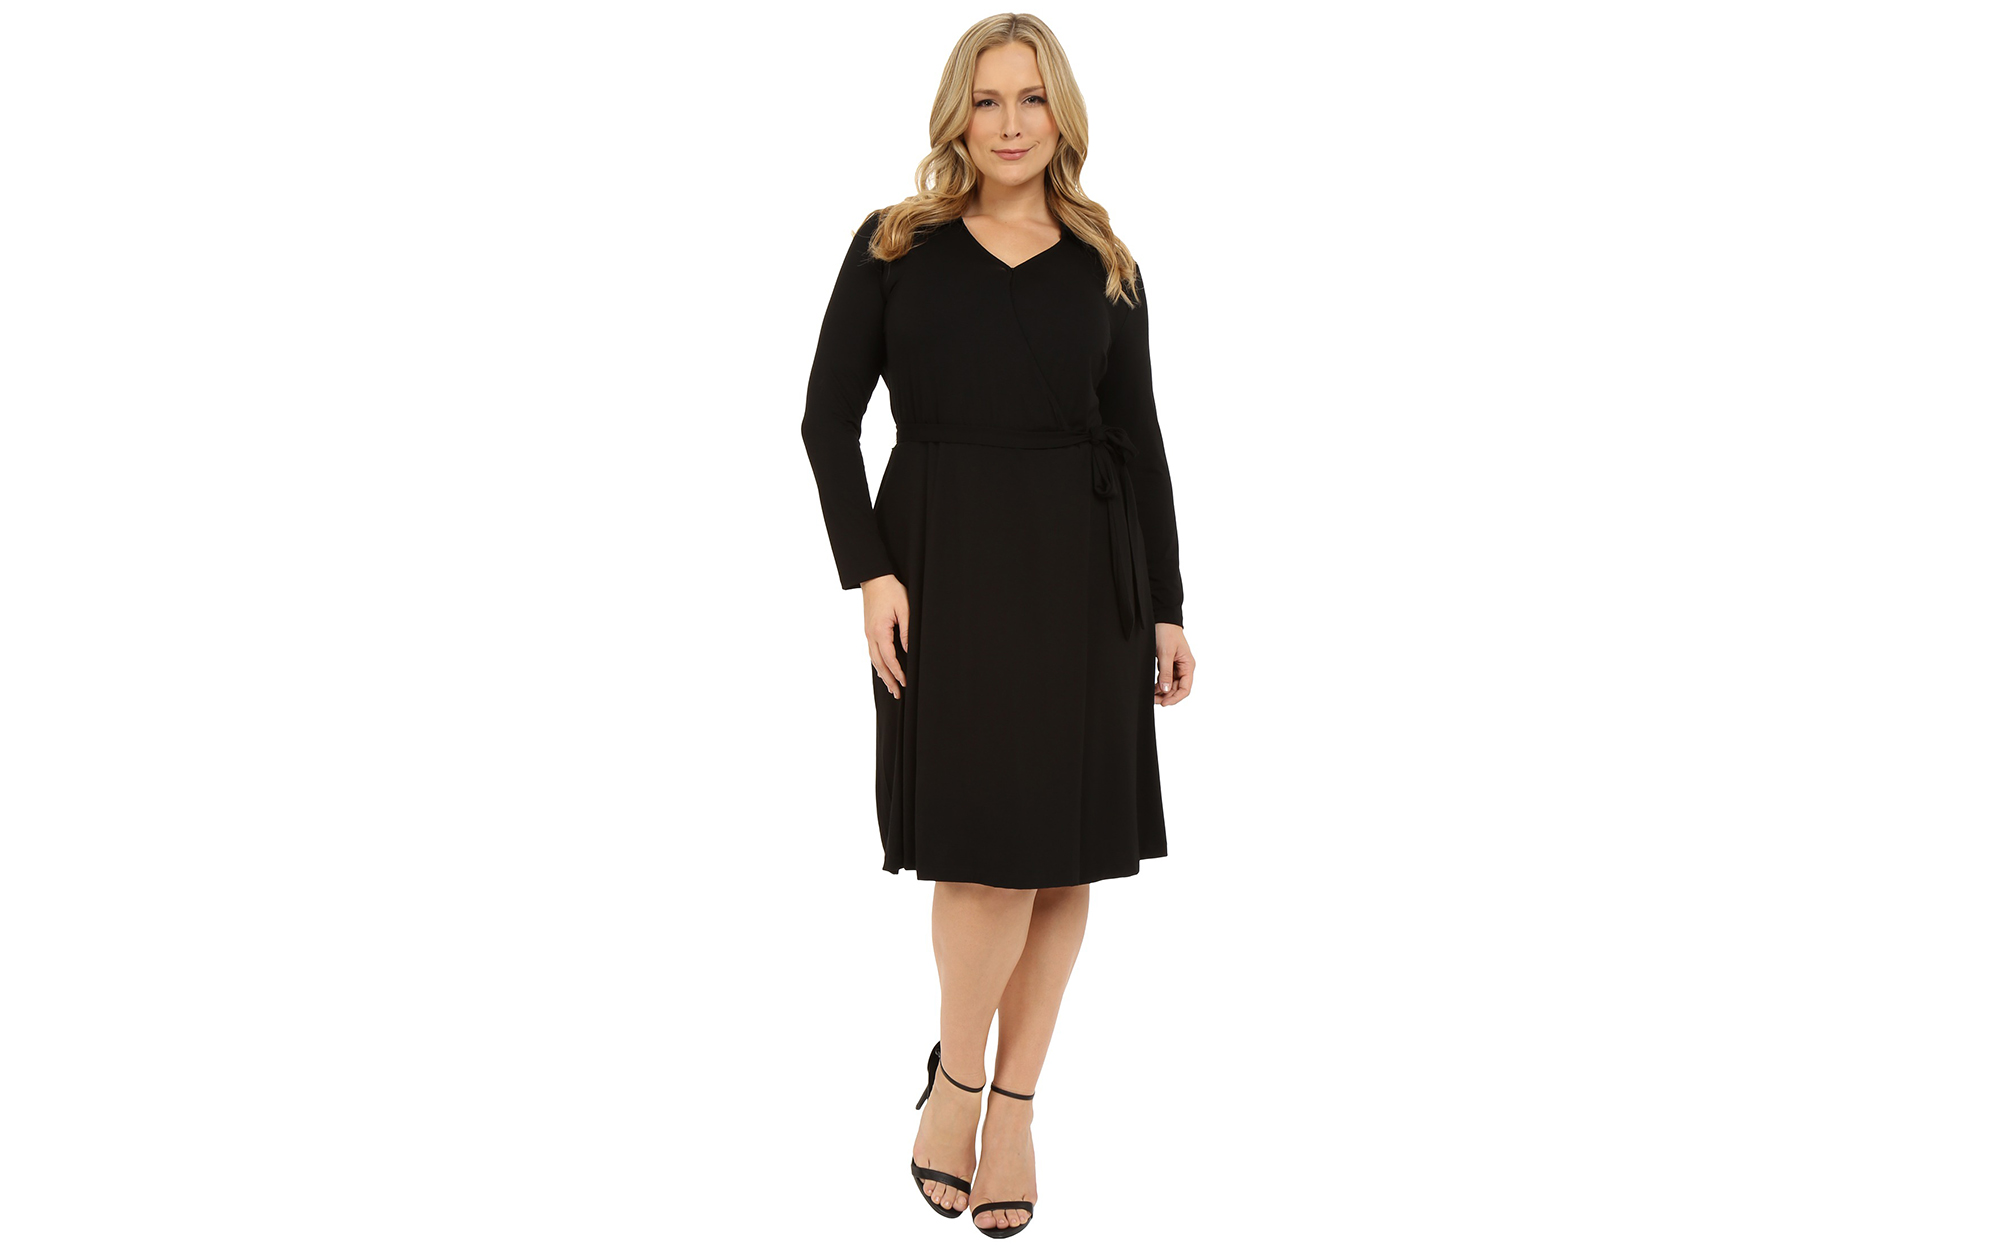 Vince Camuto Plus Plus Size 3/4 Sleeve Faux Wrap Dress